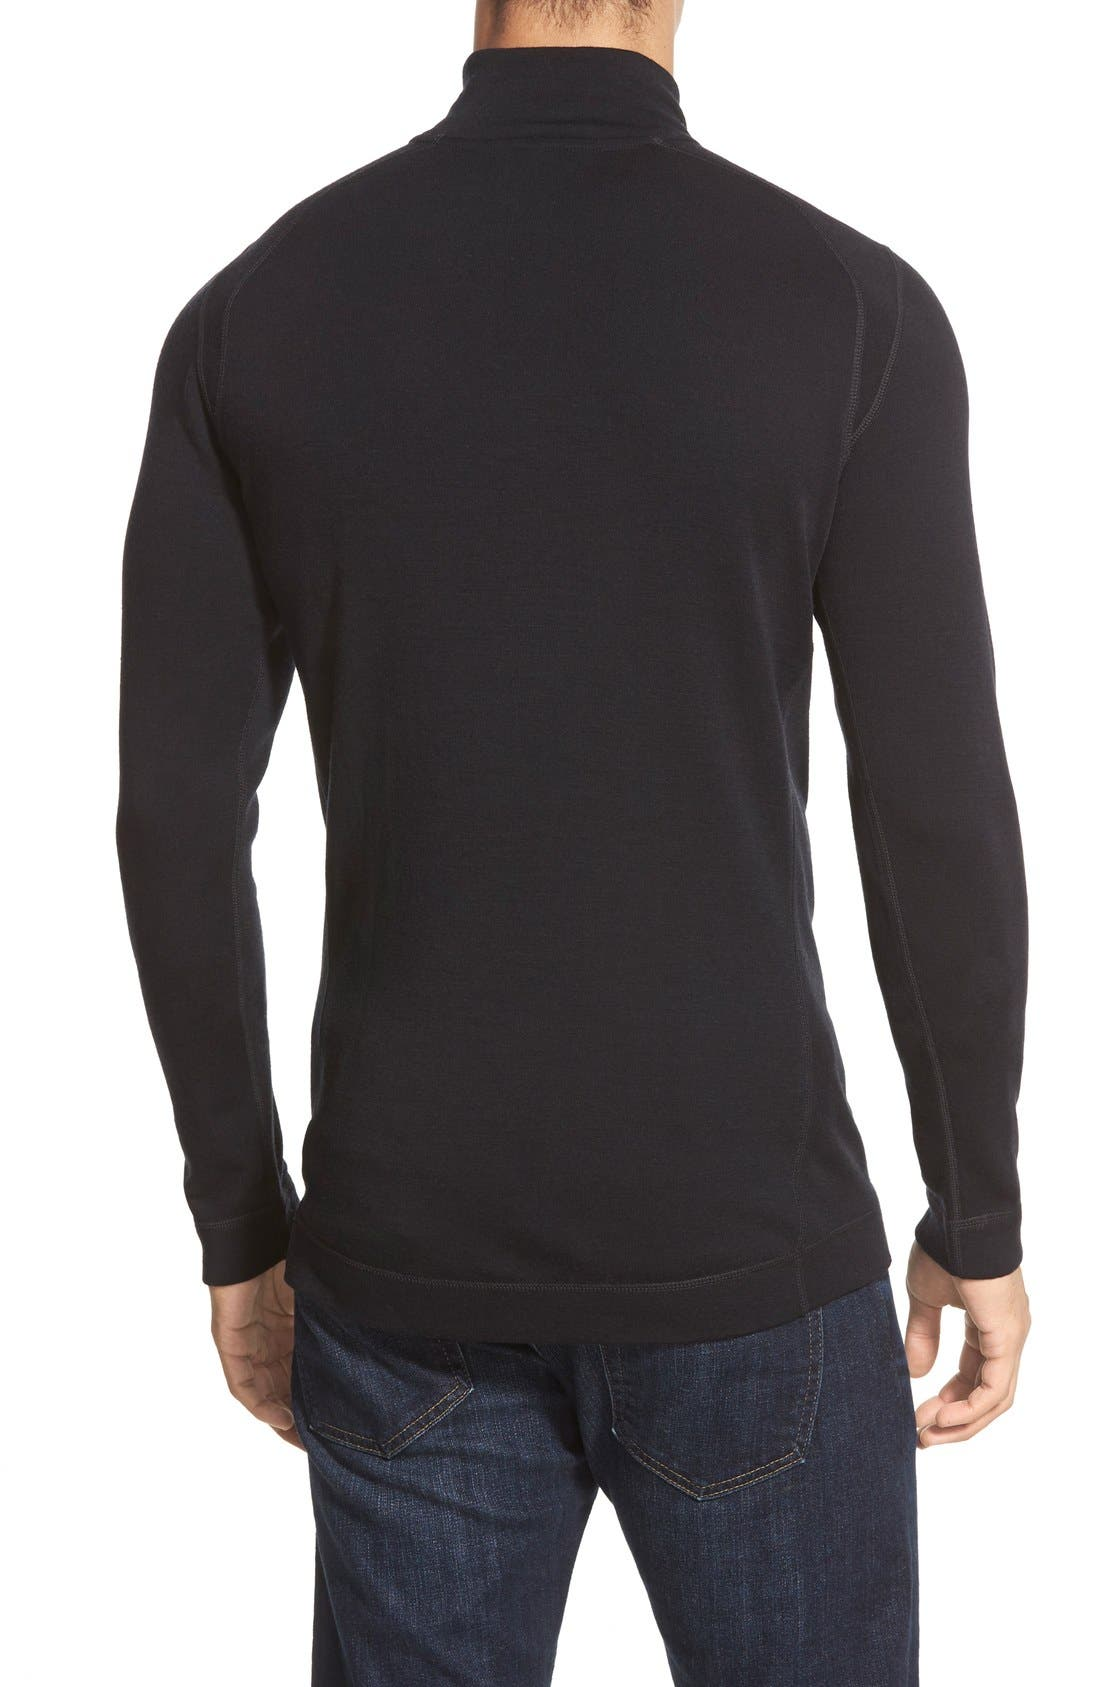 Merino 250 Base Layer Quarter Zip Pullover,                             Alternate thumbnail 2, color,                             Black